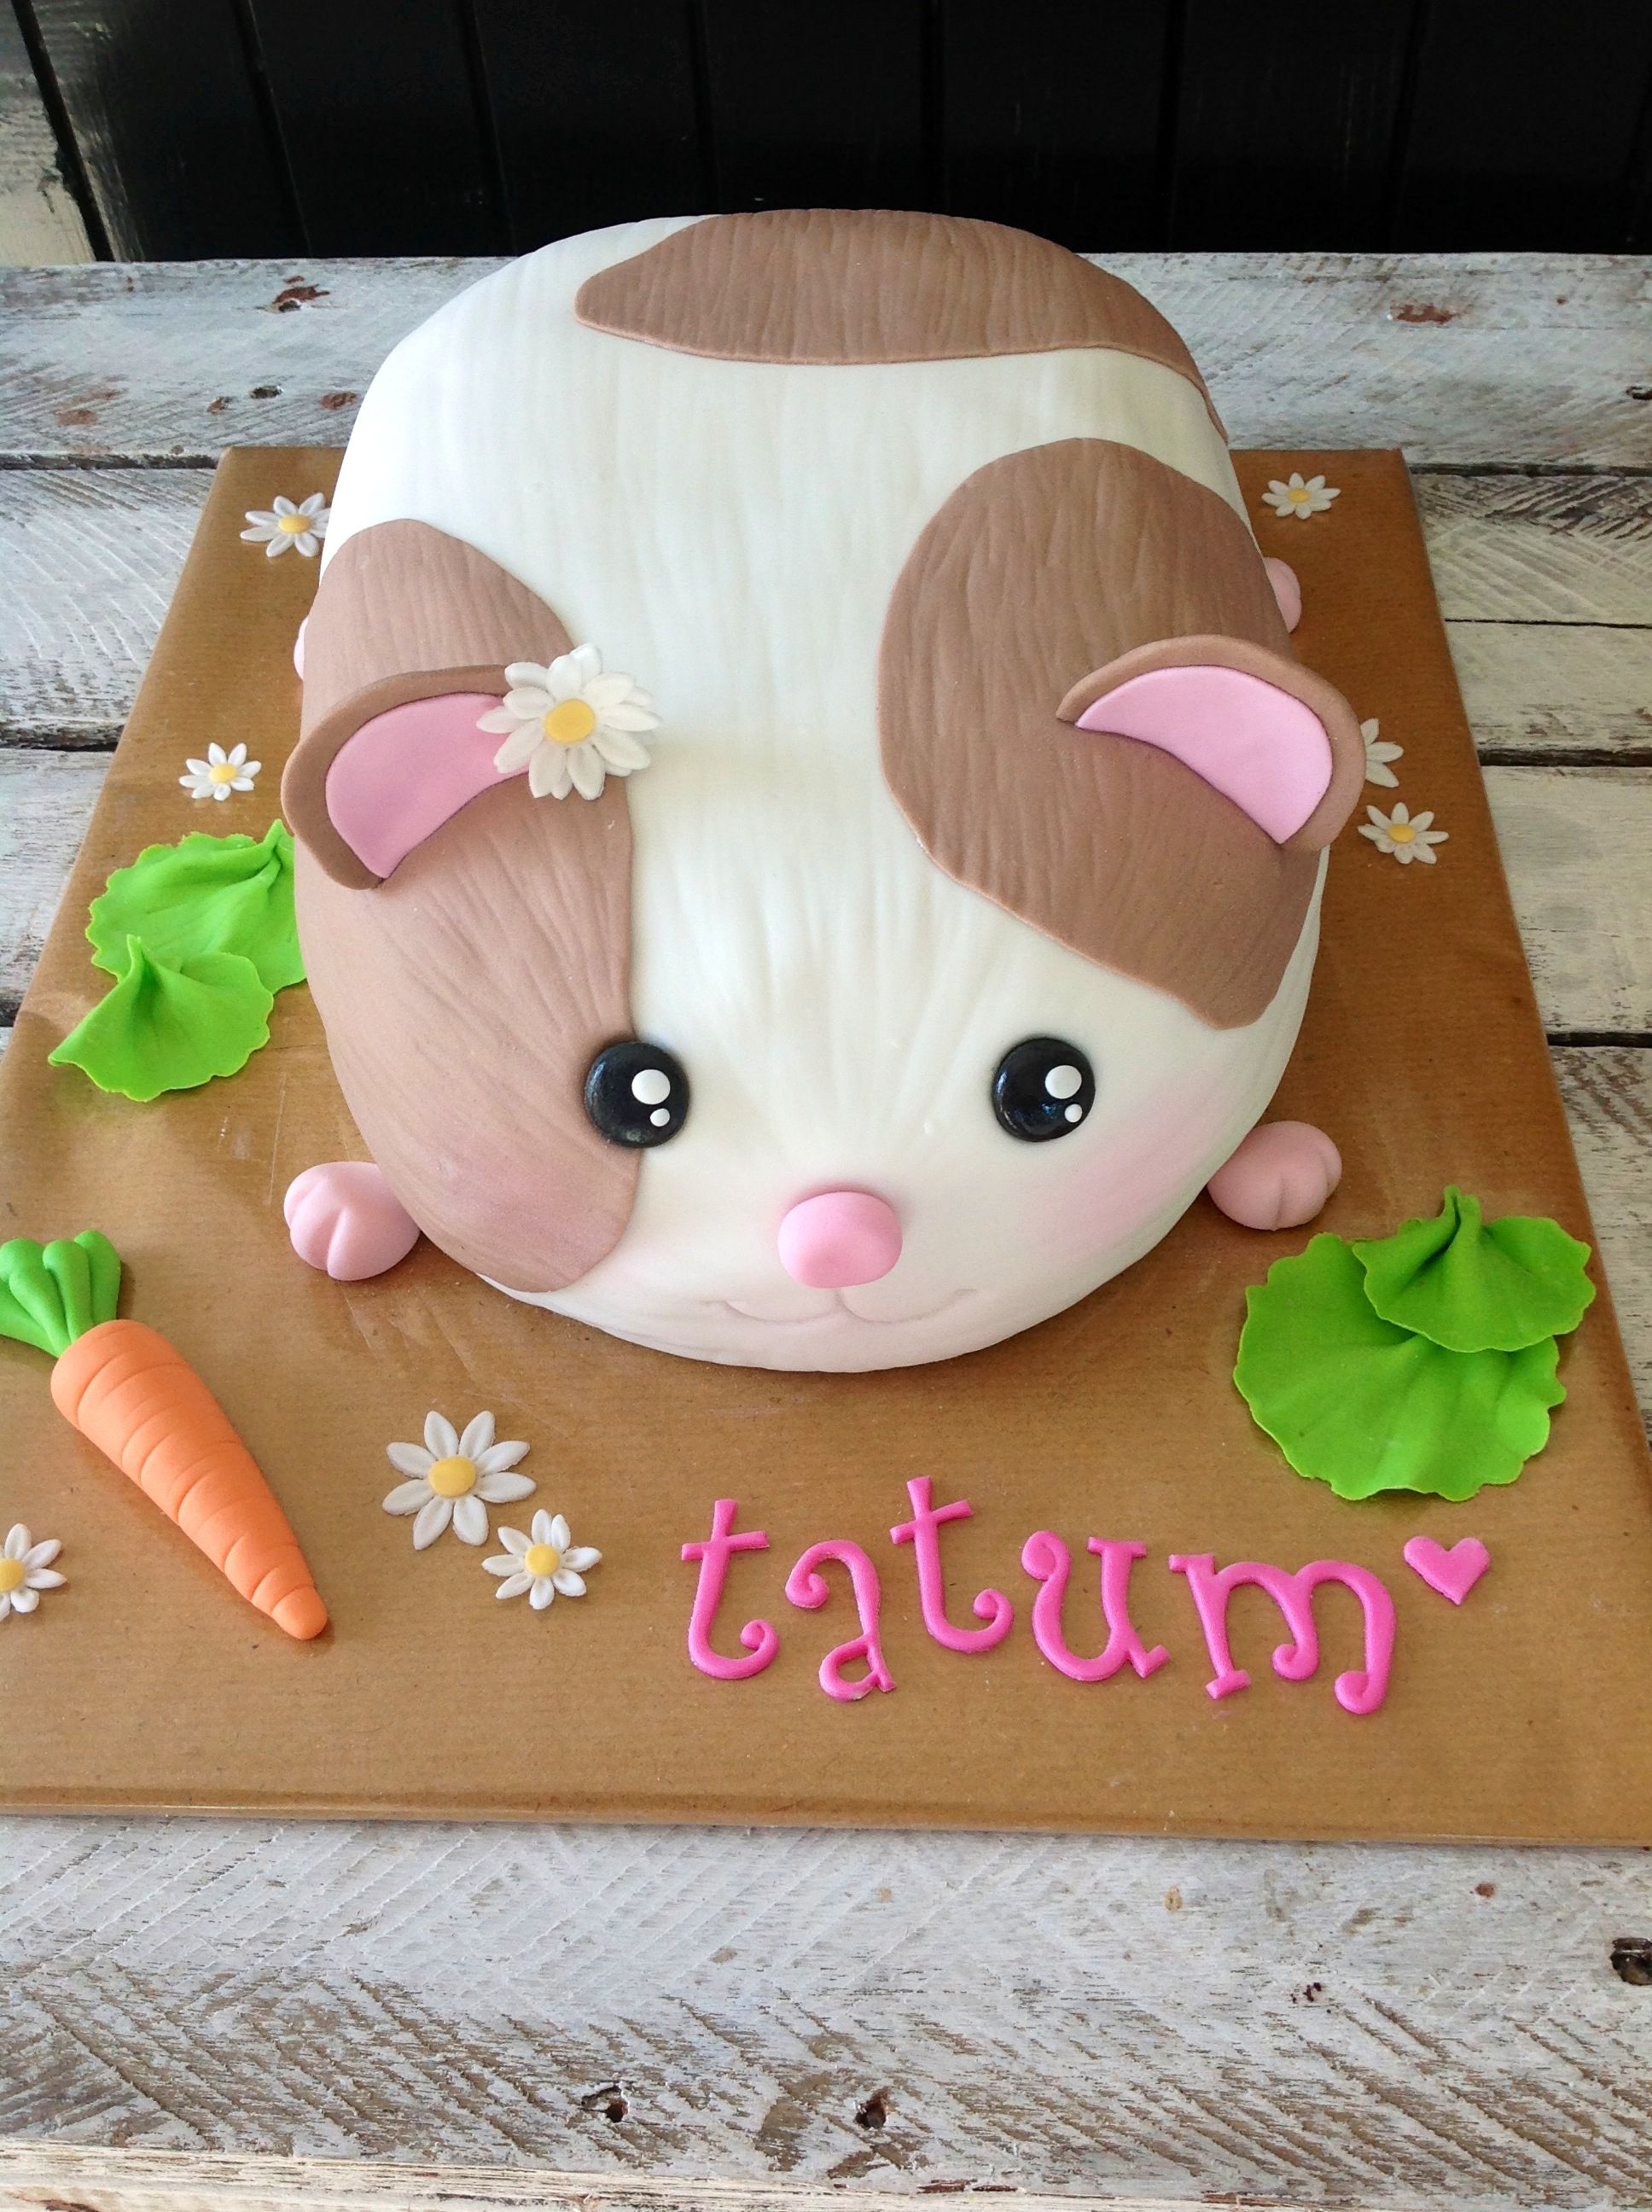 Theretroinc On Etsy In 2018 Best Guinea Pig Board Pinterest